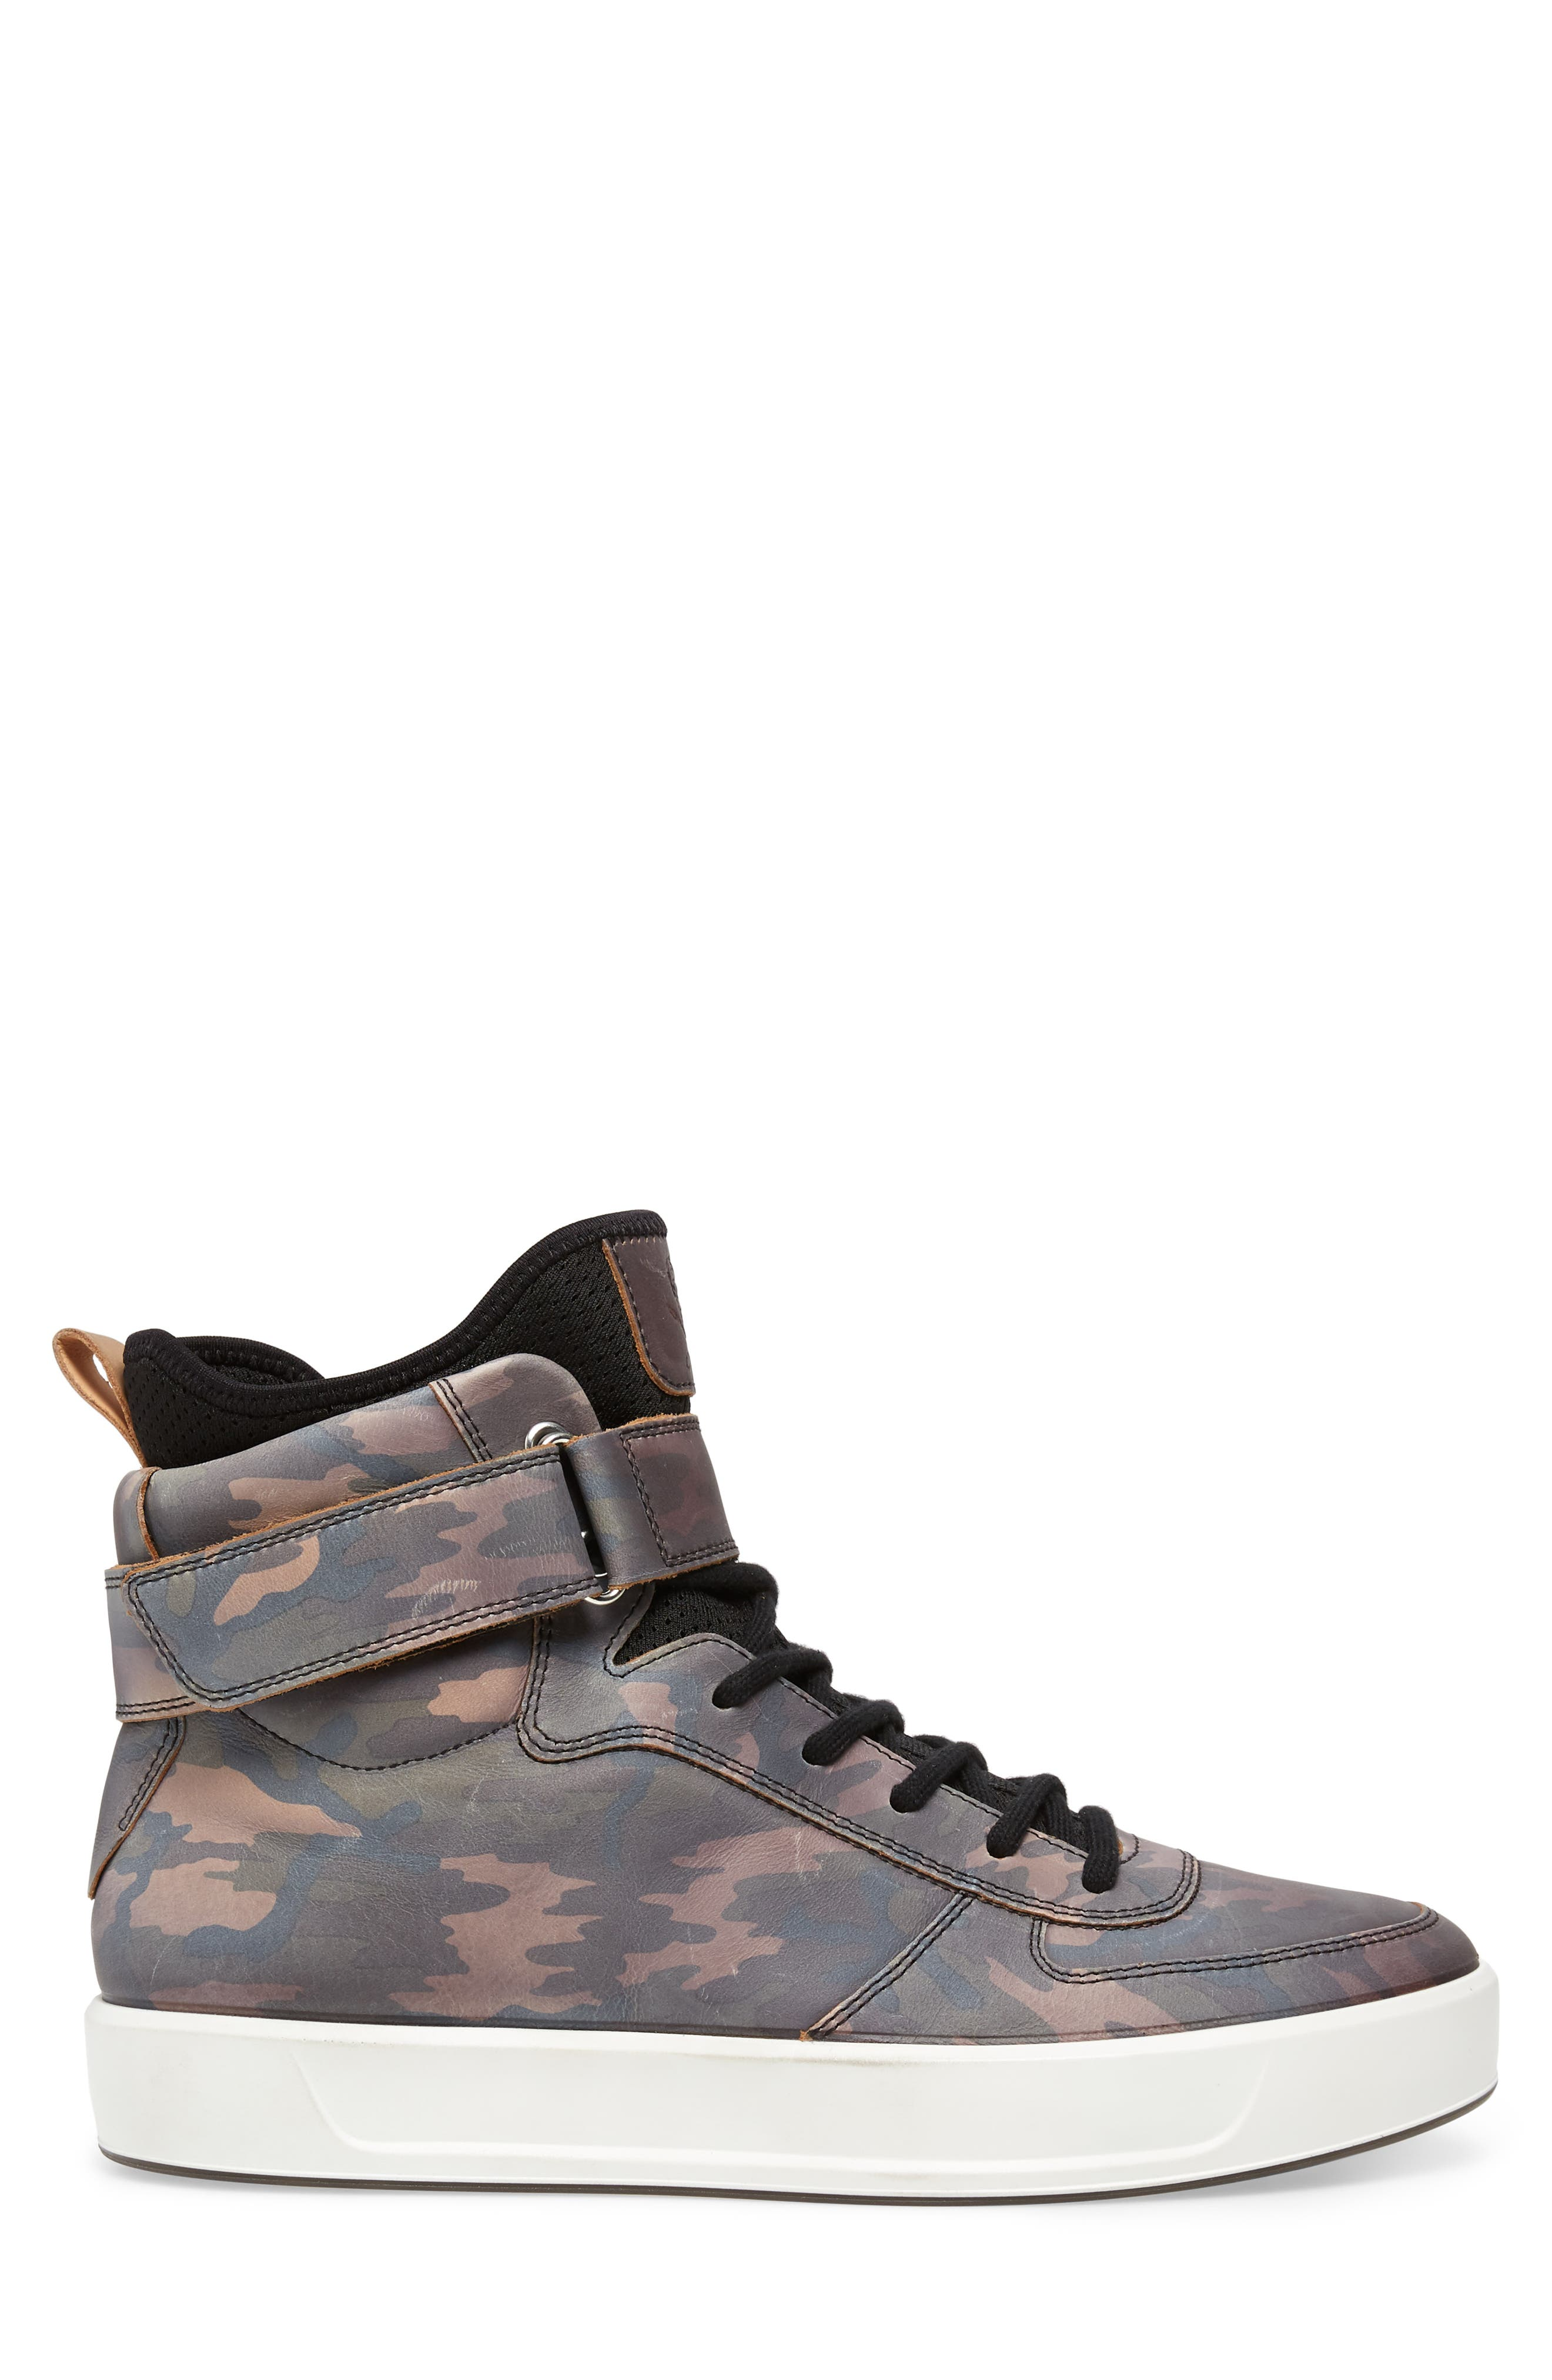 Soft 8 Color Changing Sneaker Boot,                             Alternate thumbnail 4, color,                             Black/ Camouflage Leather